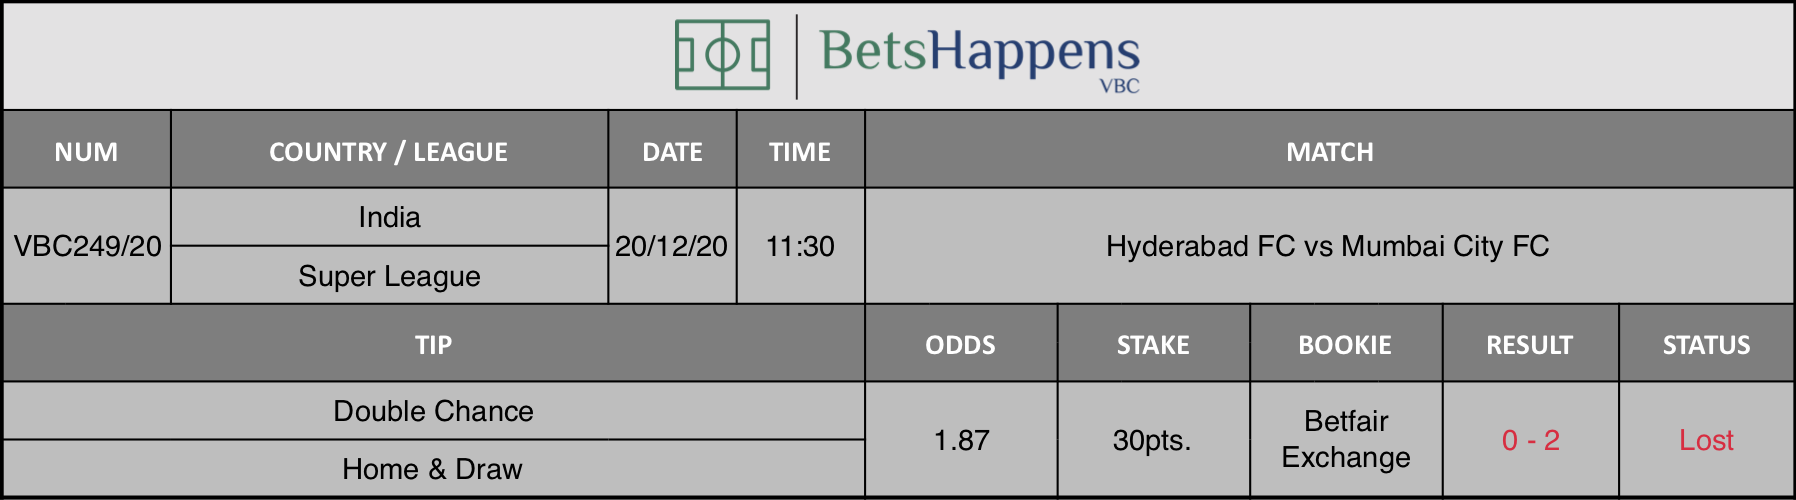 Results of our tip for the Hyderabad FC vs Mumbai City FC match where Double Chance Home & Draw is recommended.